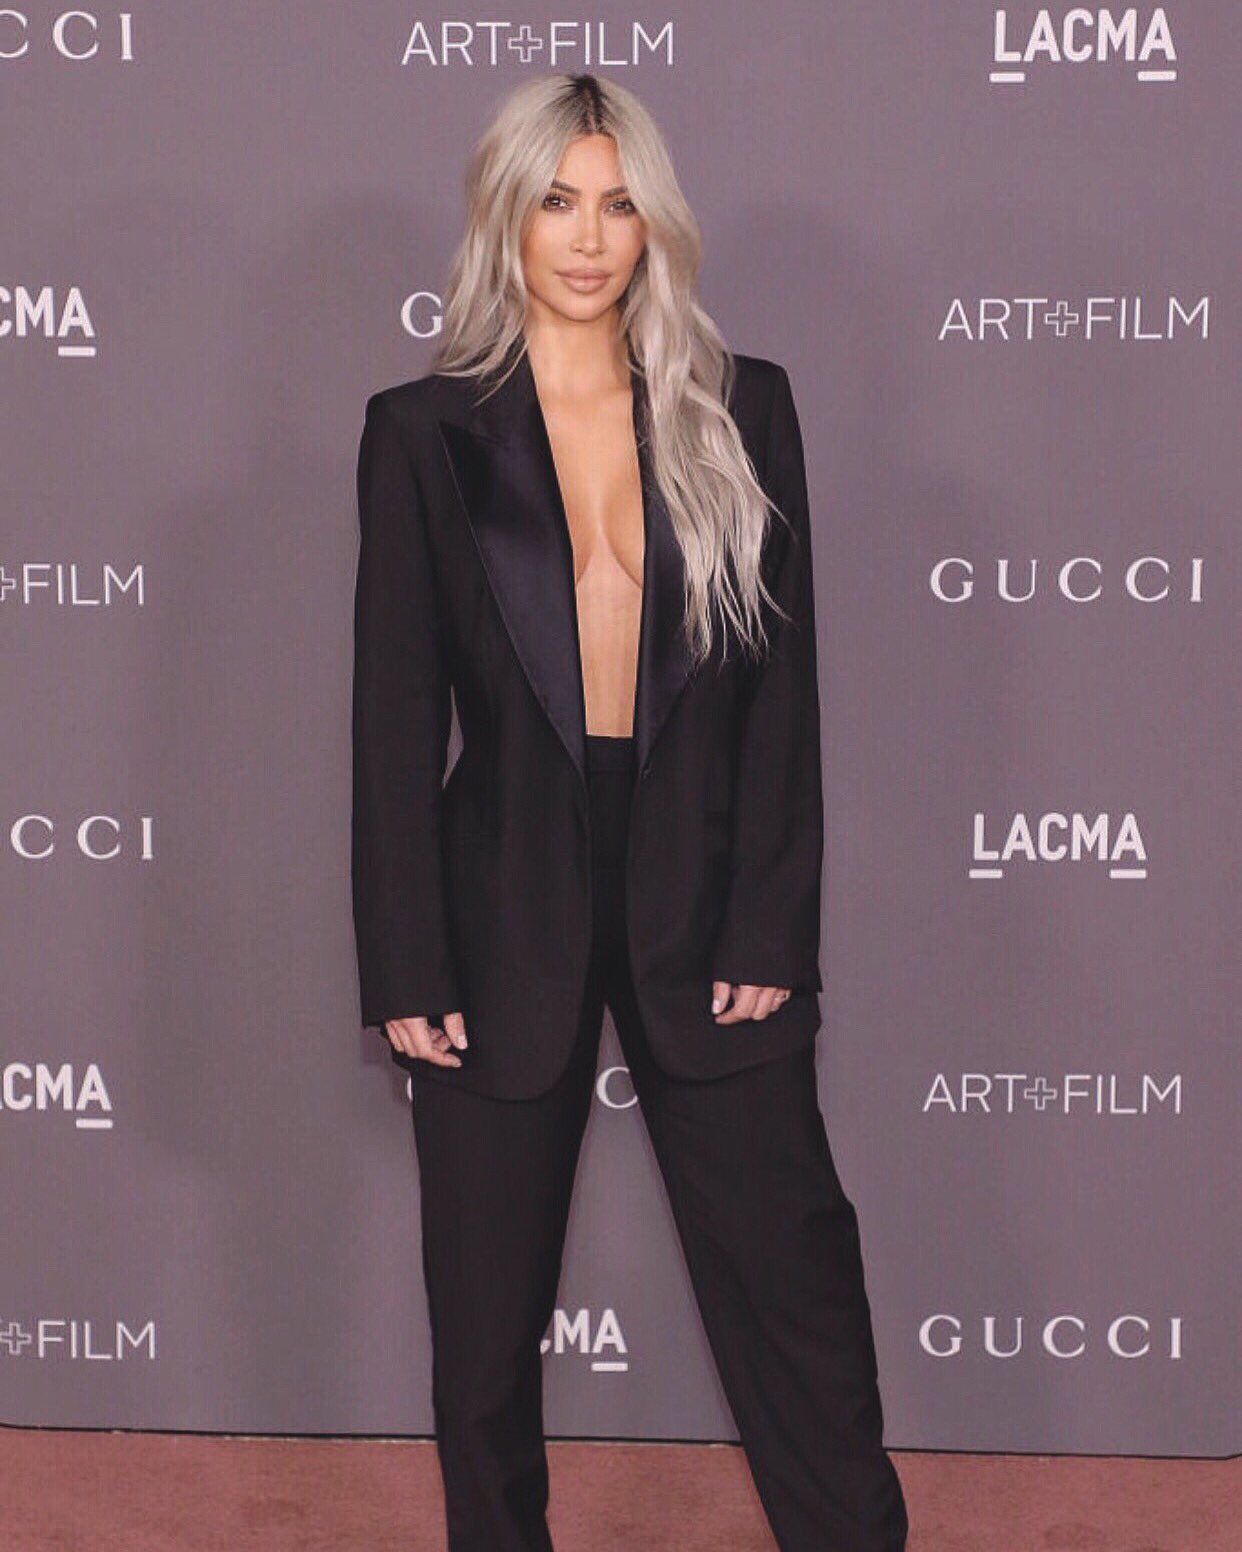 LACMA event wearing Gucci by Tom Ford https://t.co/PbtH23o1Pk